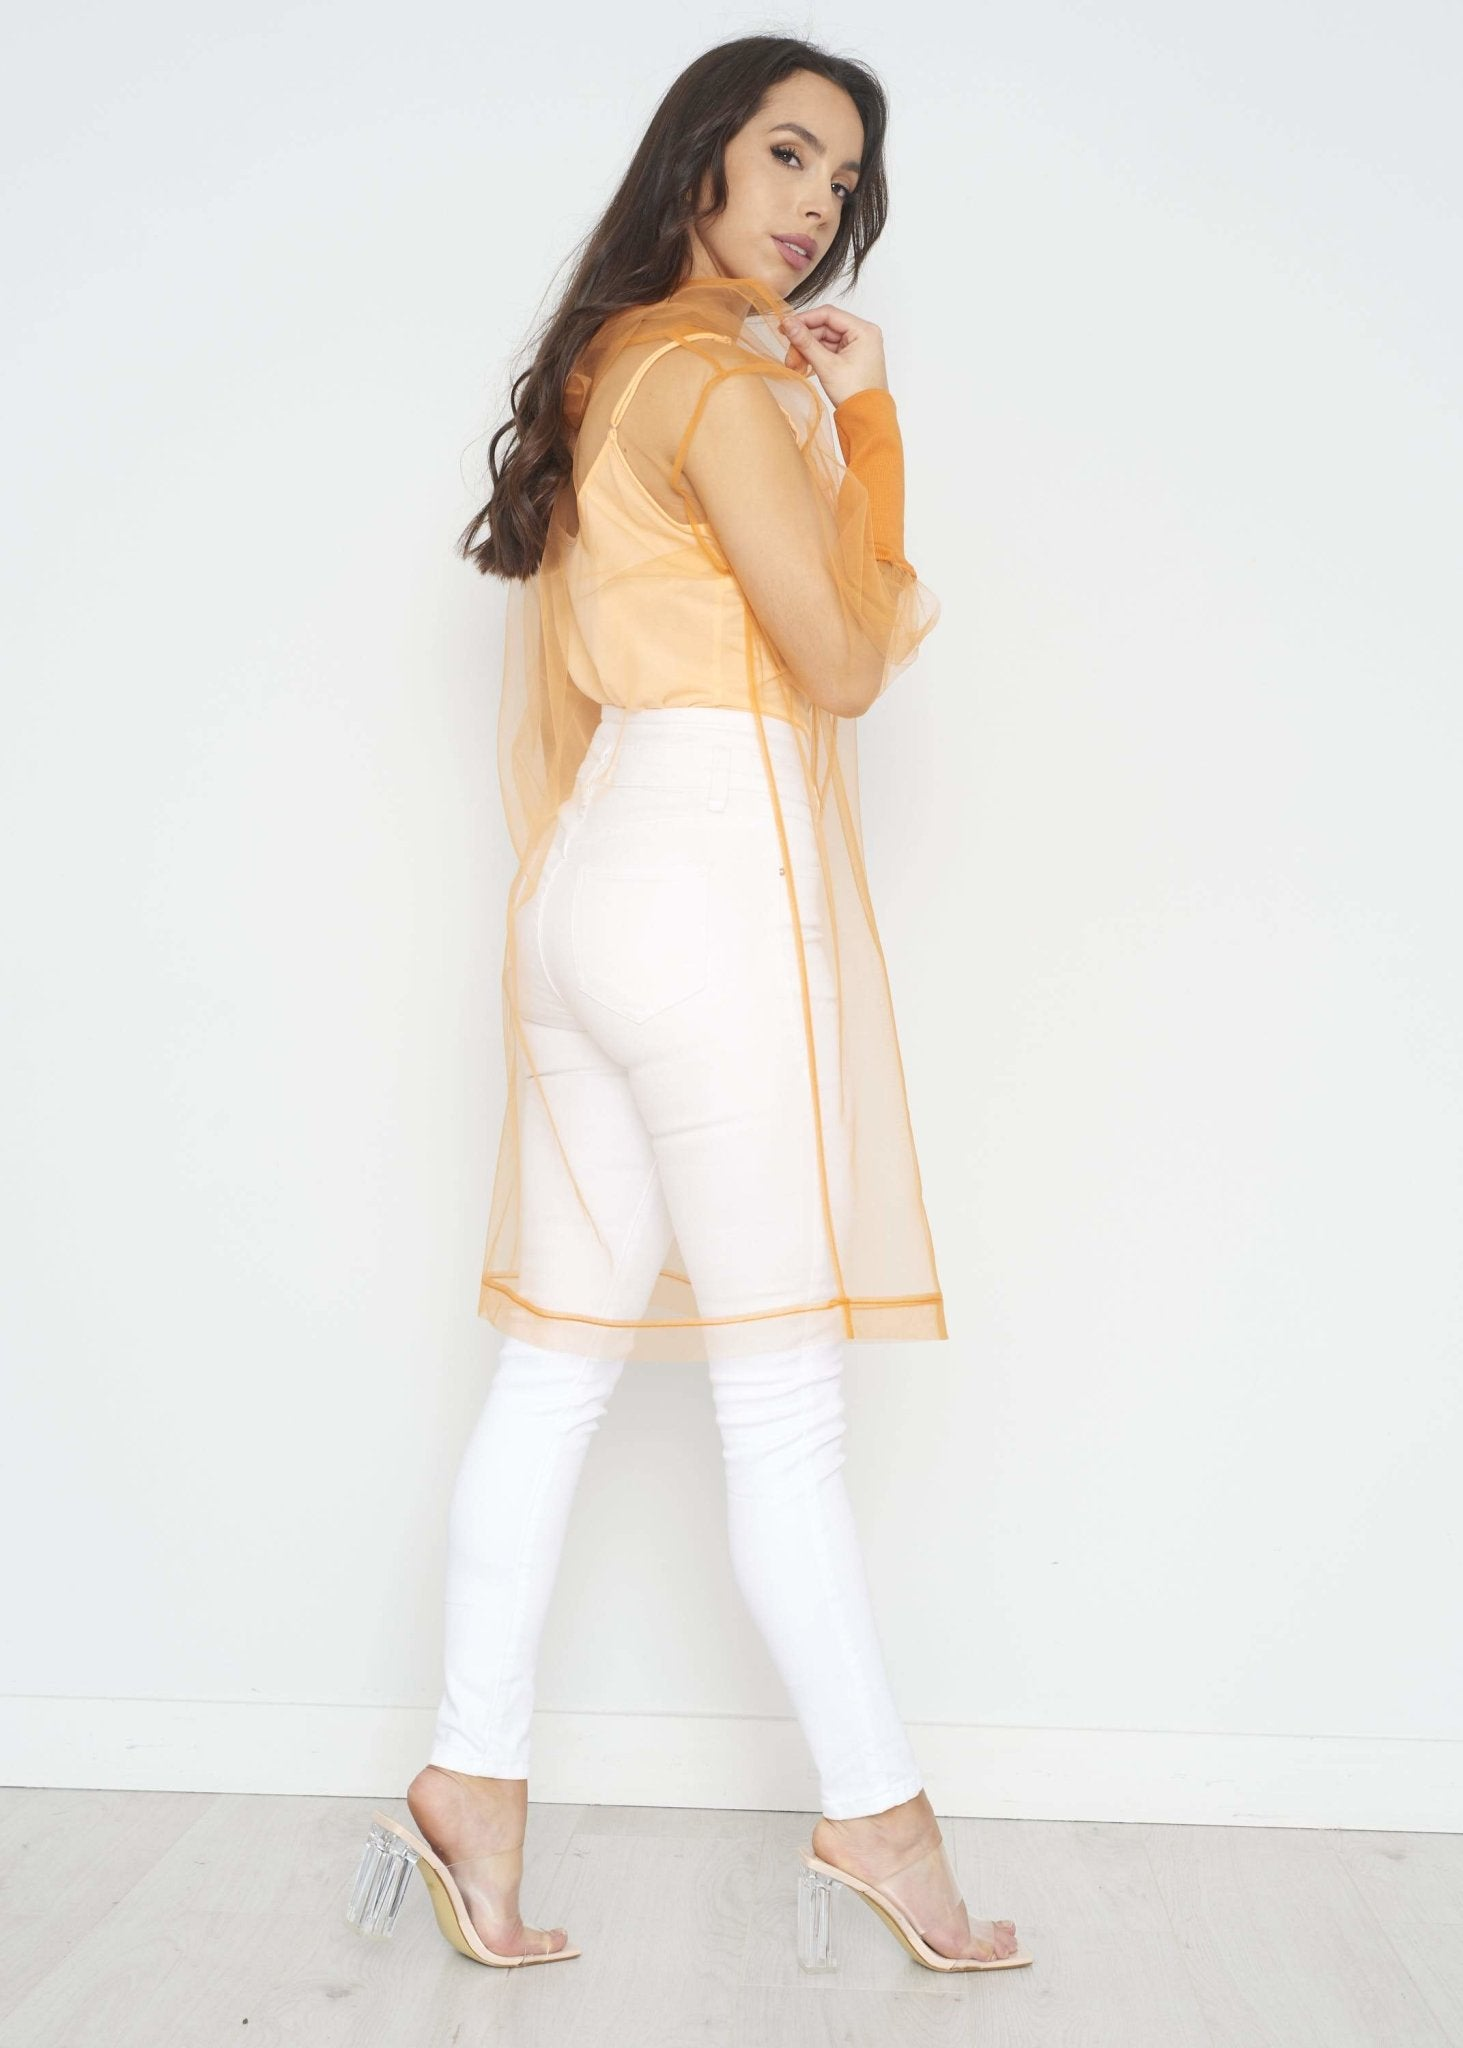 Savannah Tulle Hoodie In Orange - The Walk in Wardrobe